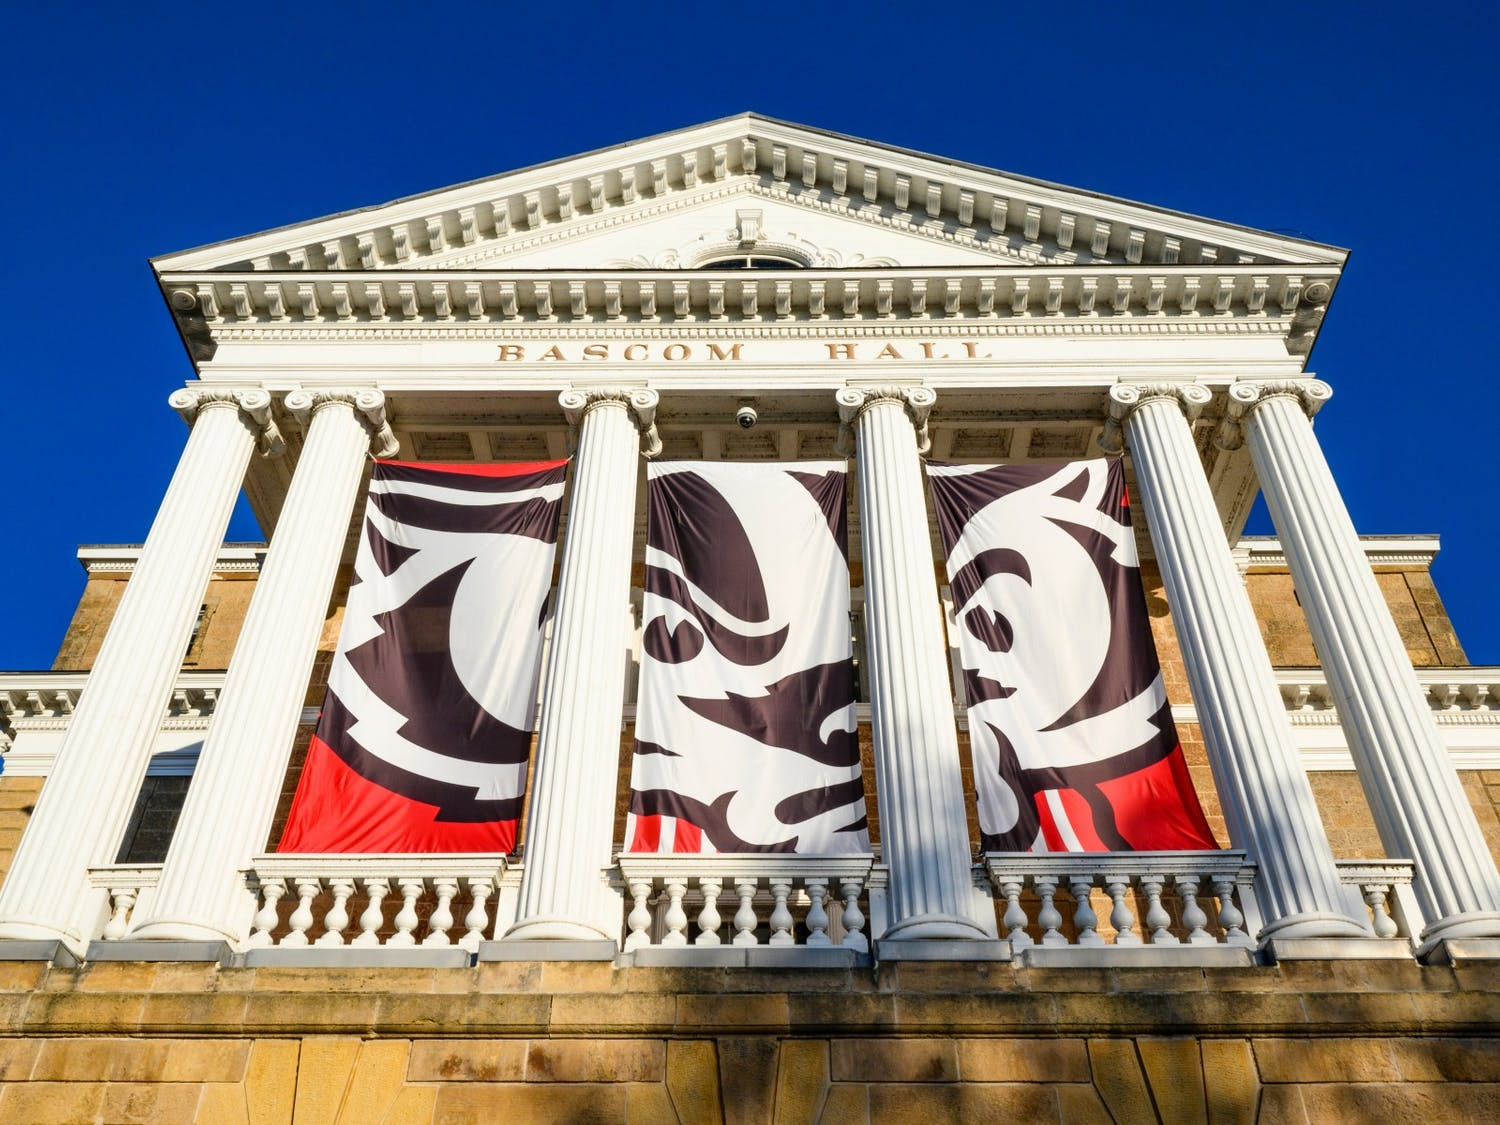 UW-Madison Chancellor Rebecca Blank's directive came after a spike in new COVID-19 cases within the UW community over the past week.